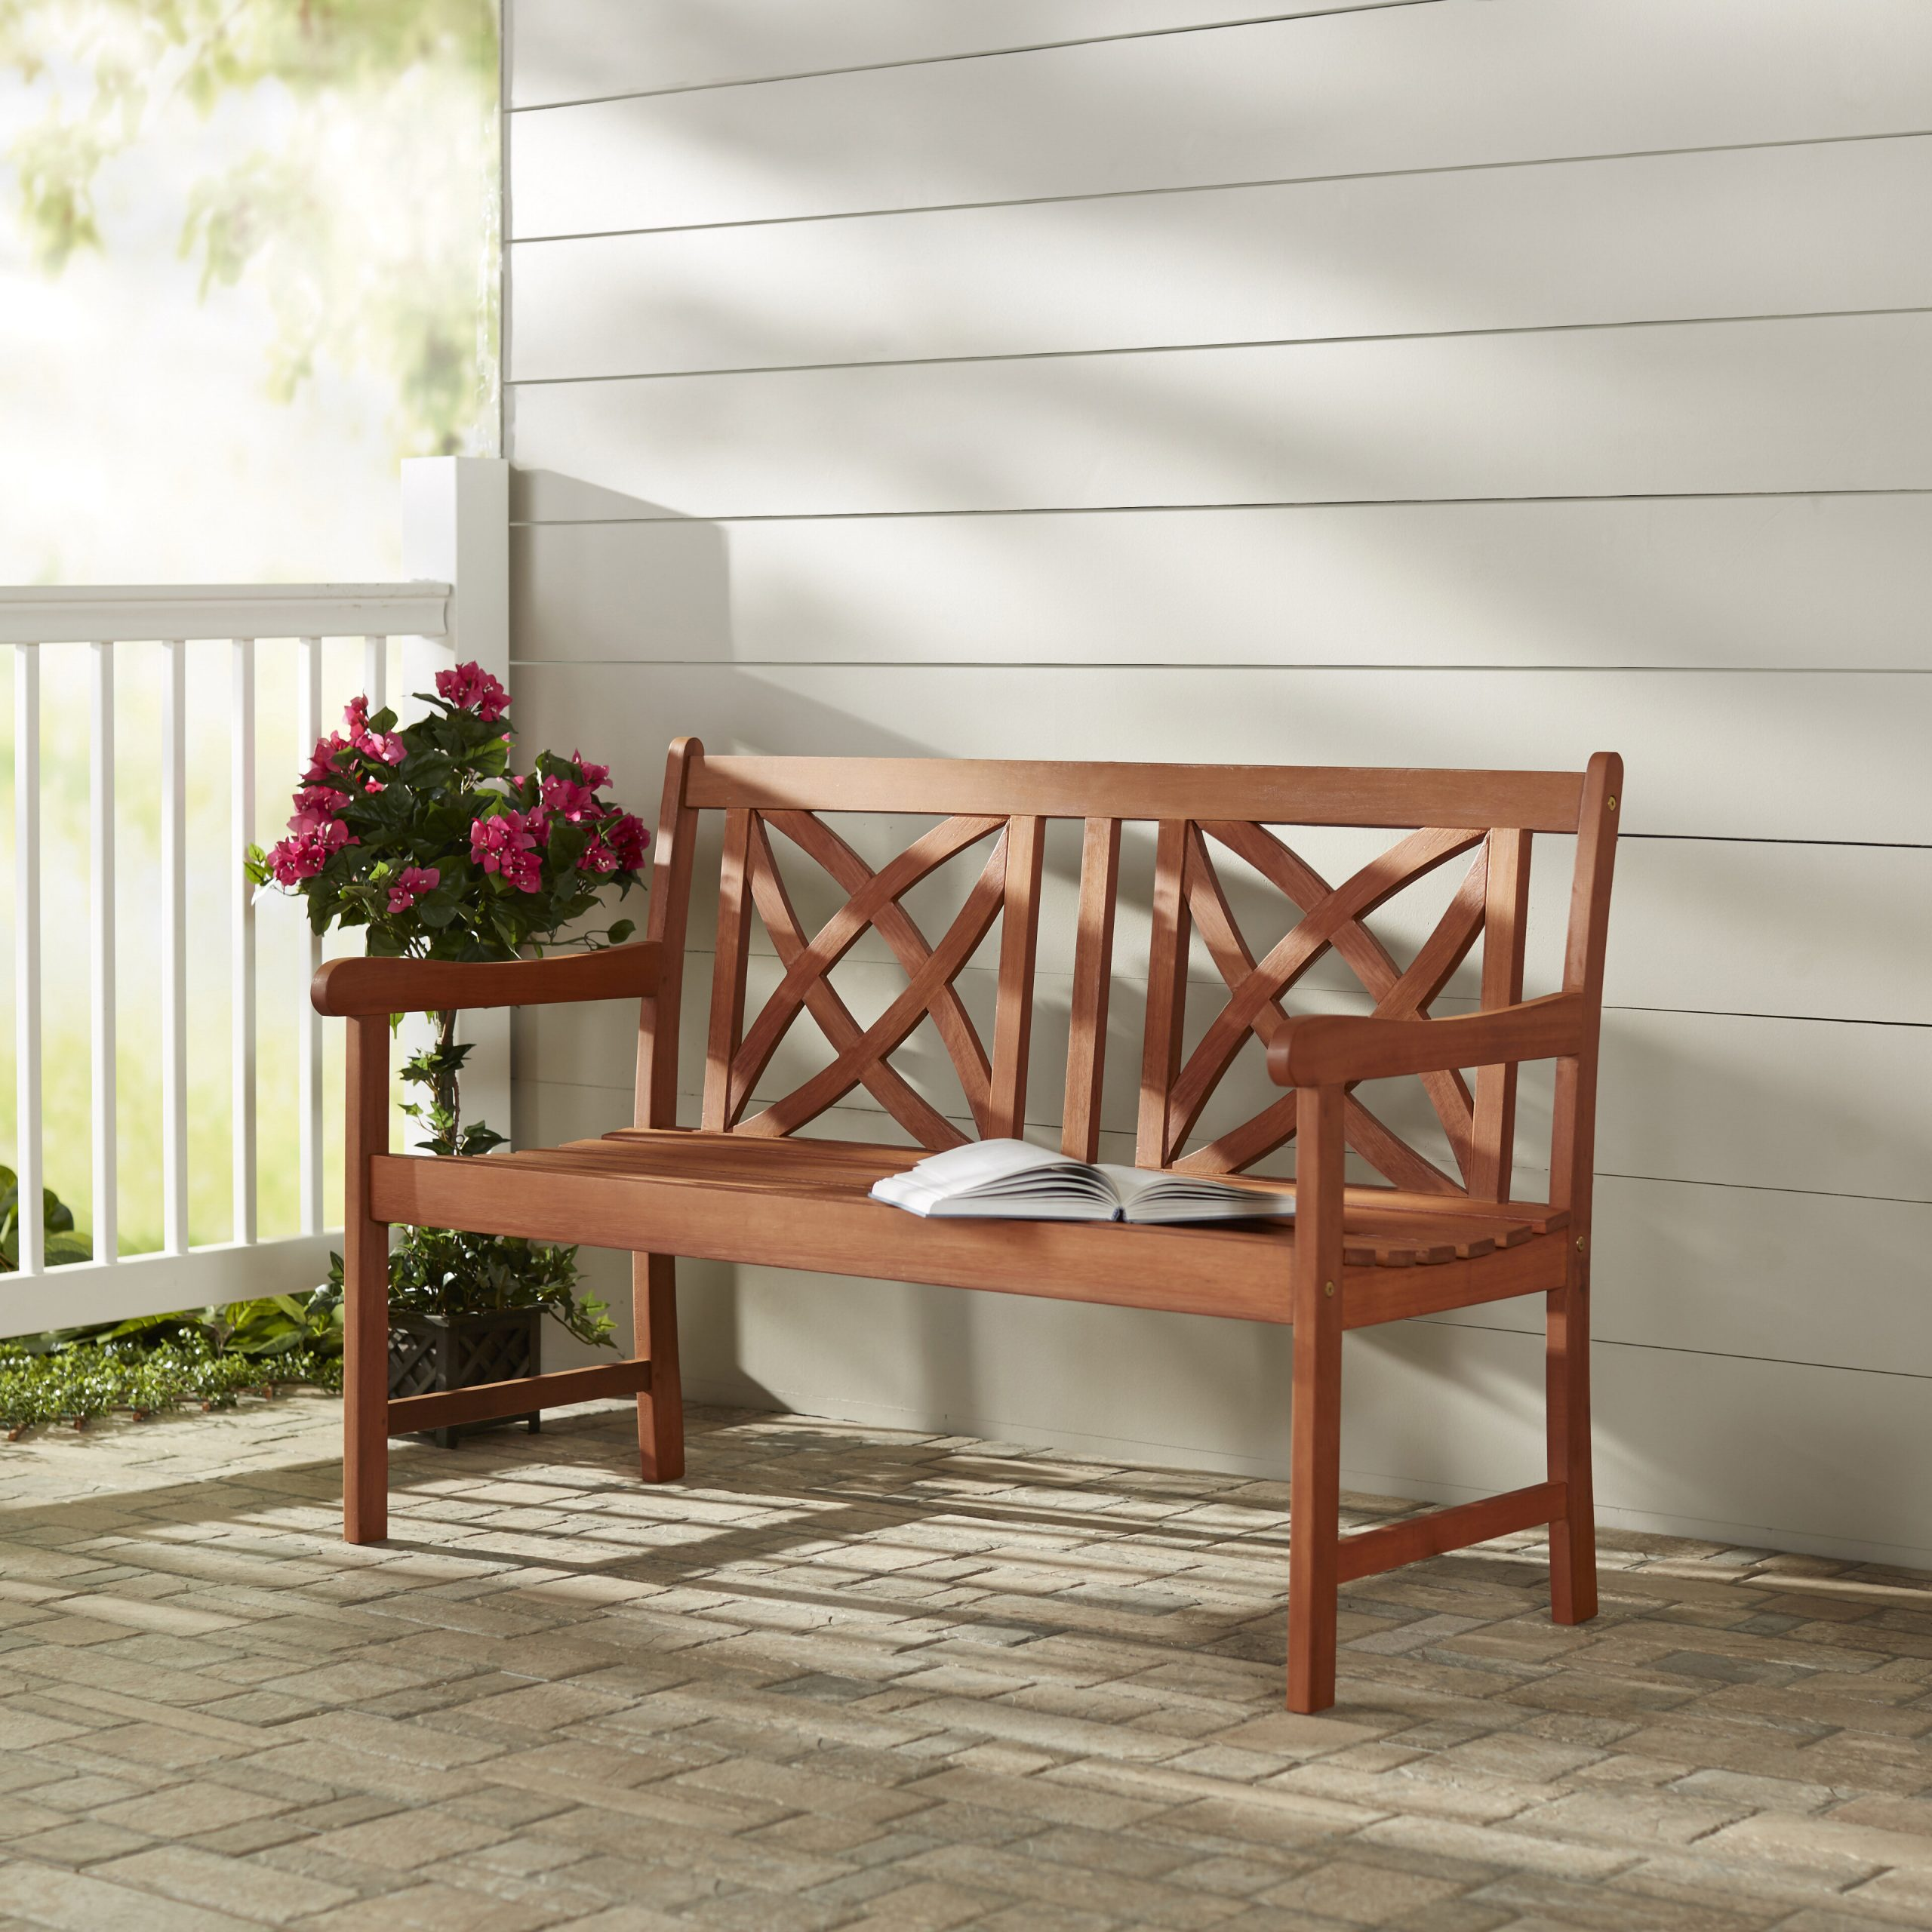 Maliyah Wooden Garden Bench Regarding Ismenia Checkered Outdoor Cast Aluminum Patio Garden Benches (View 14 of 25)